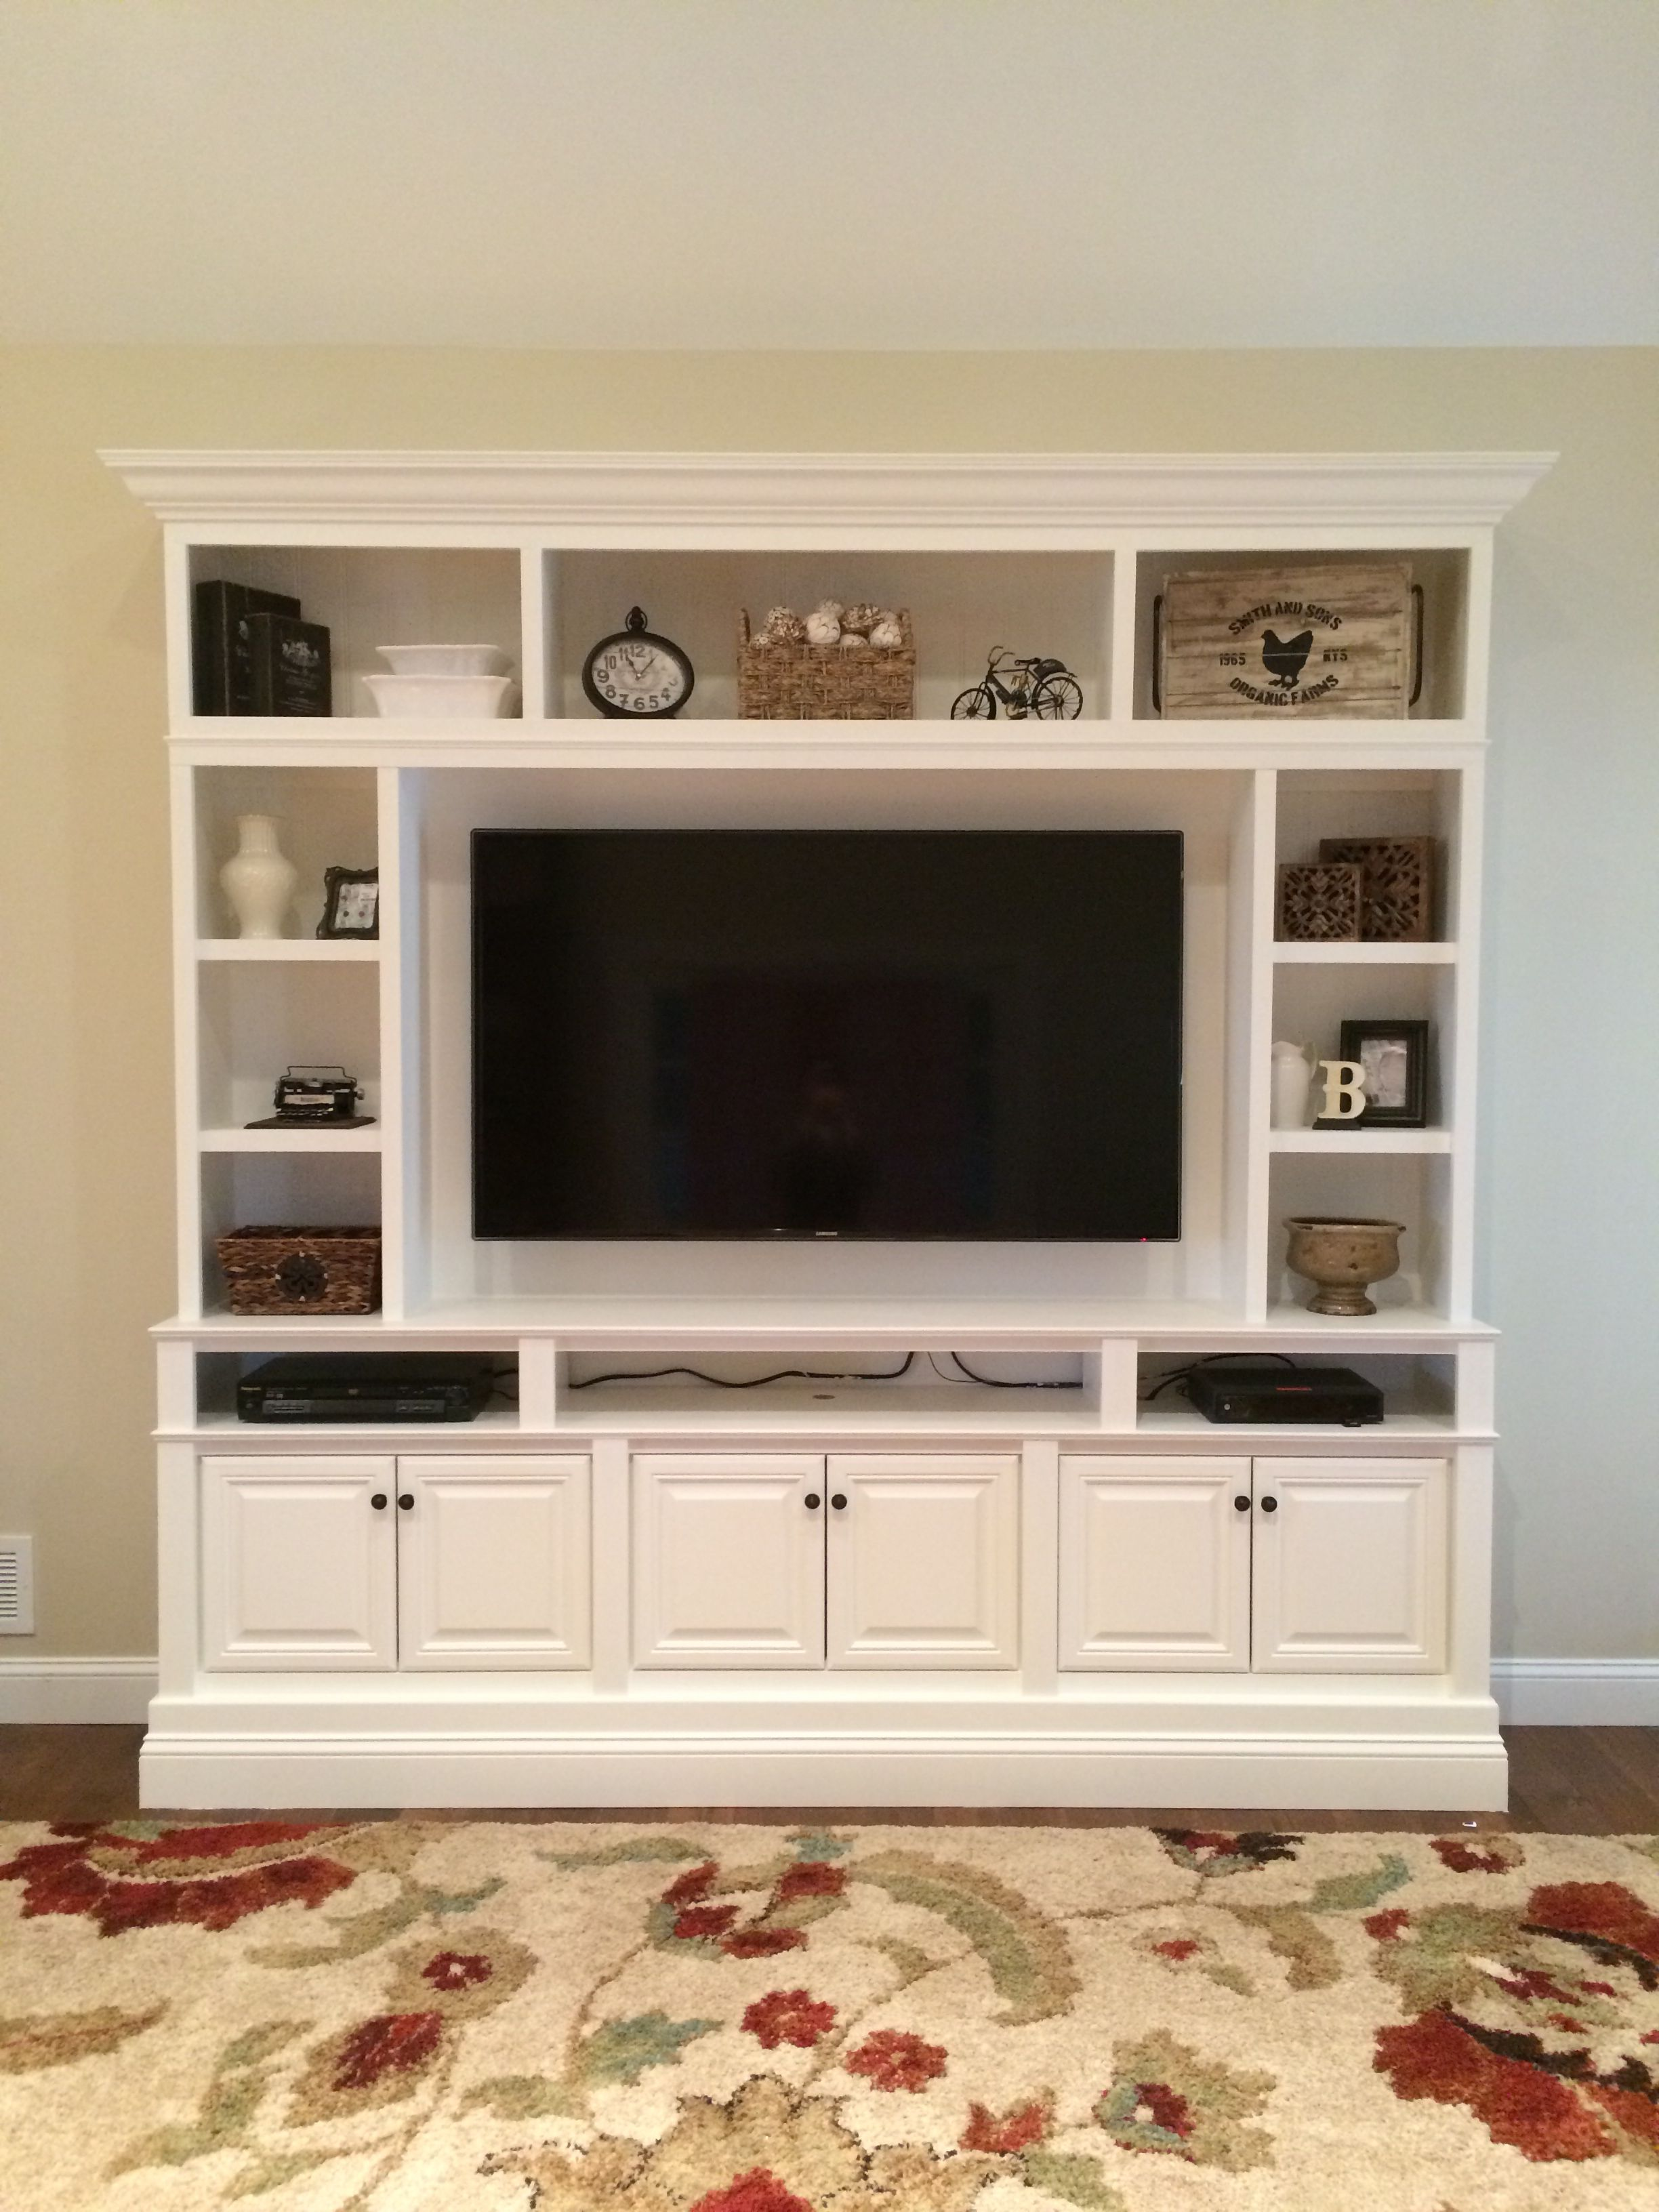 Wall Tv Unit Design Tv Unit: 17 DIY Entertainment Center Ideas And Designs For Your New